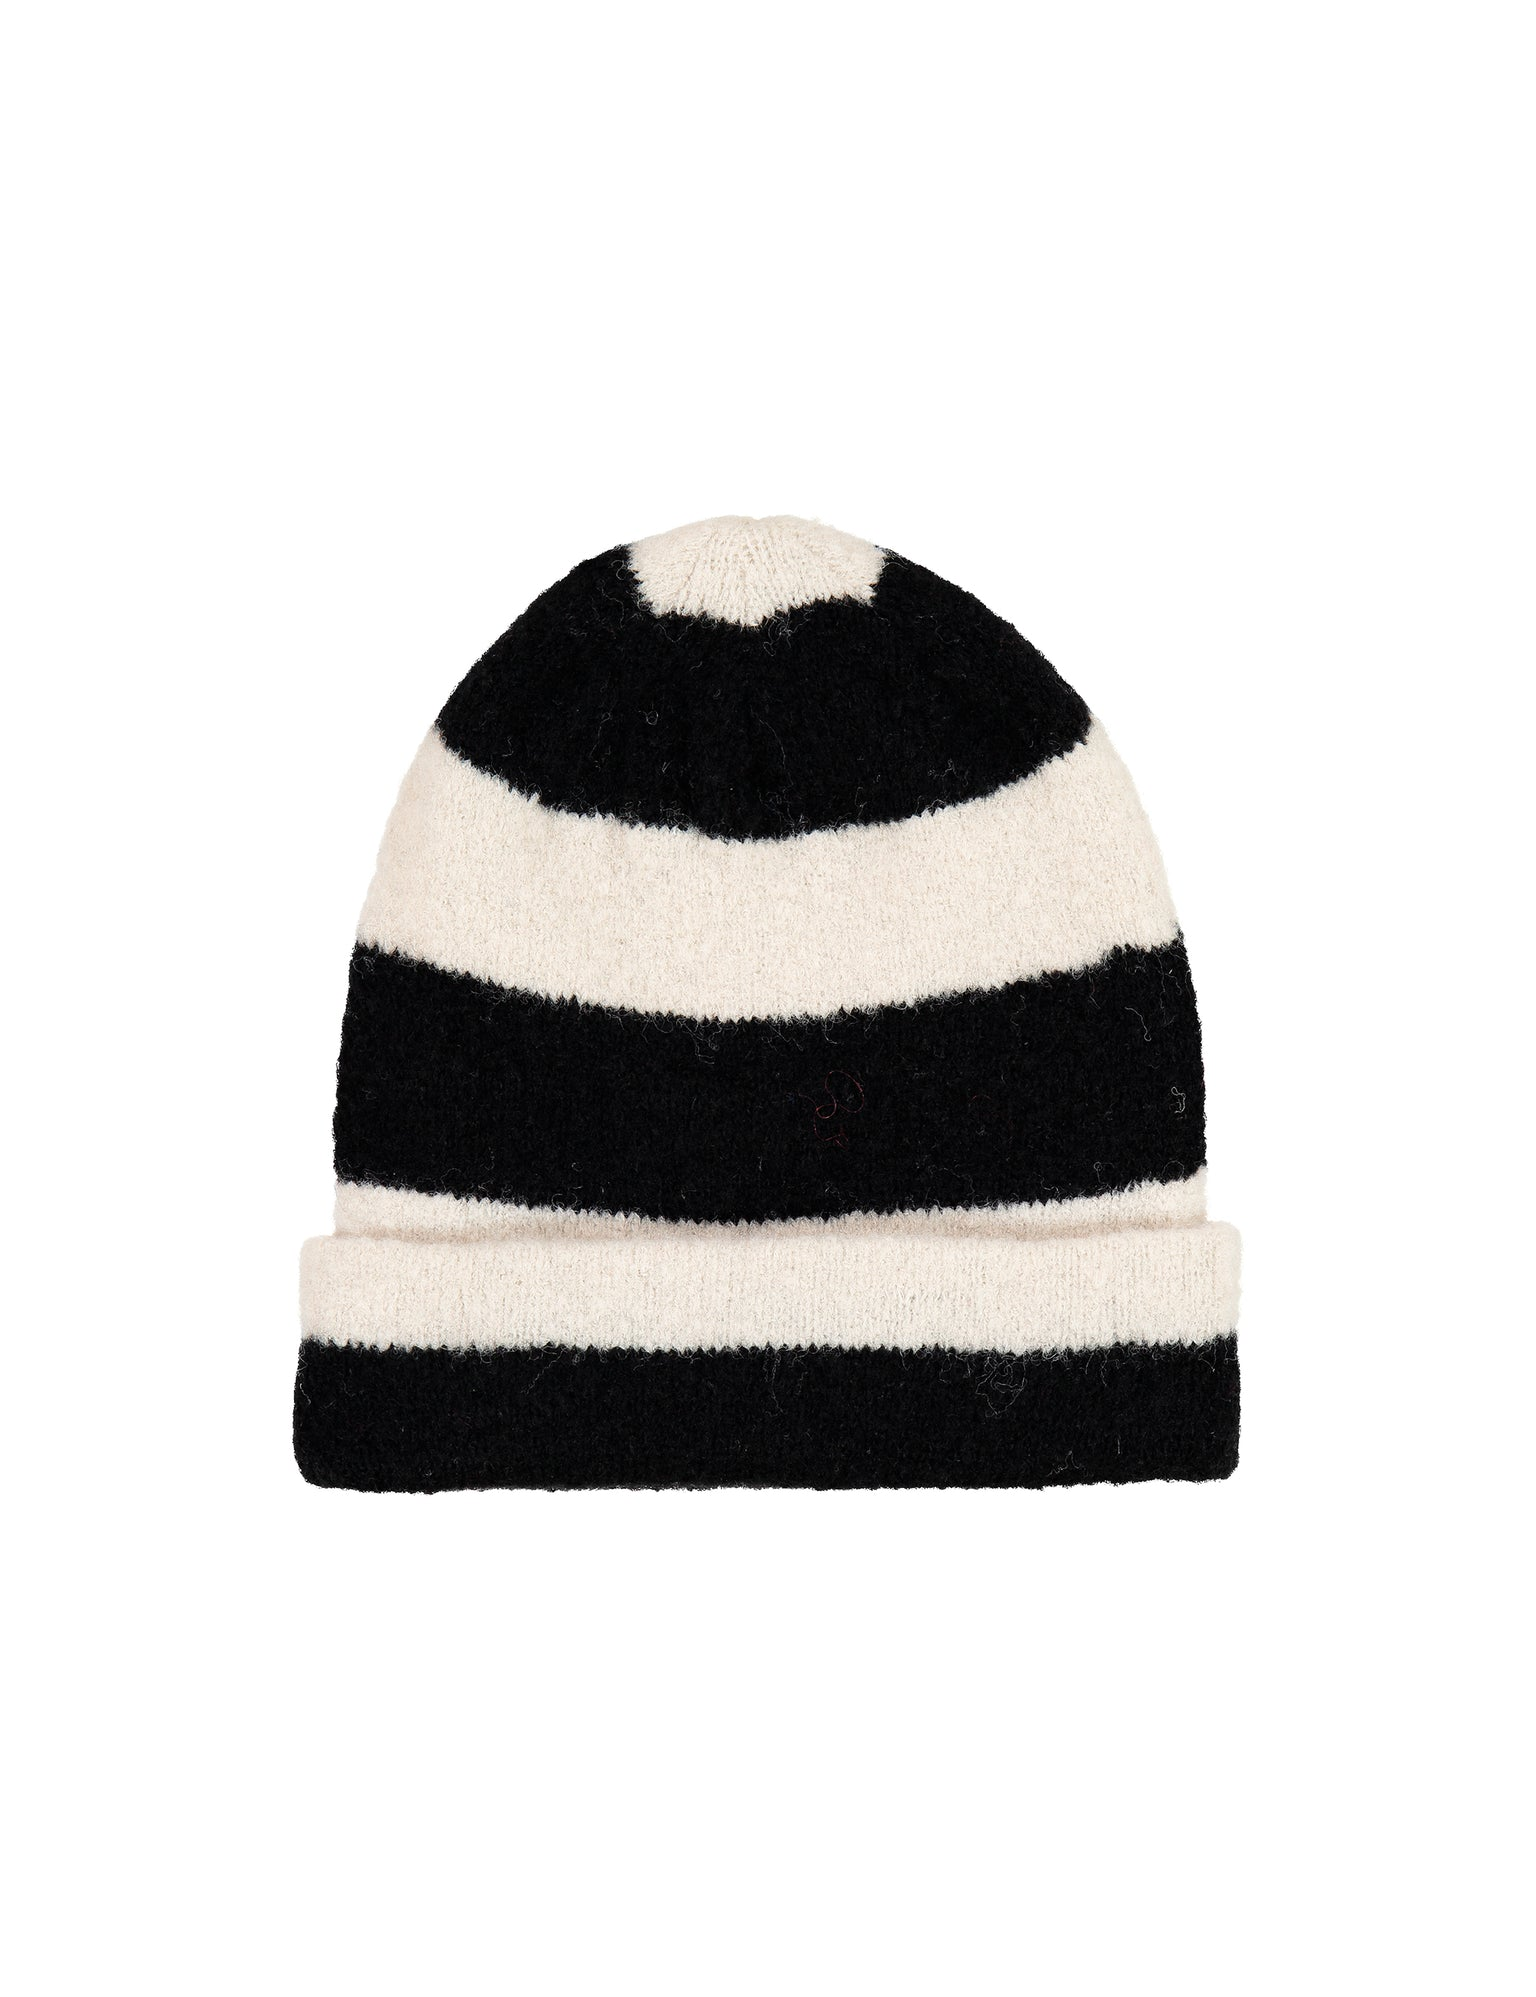 Soft Brushed Knit Alvira, Black/Off White